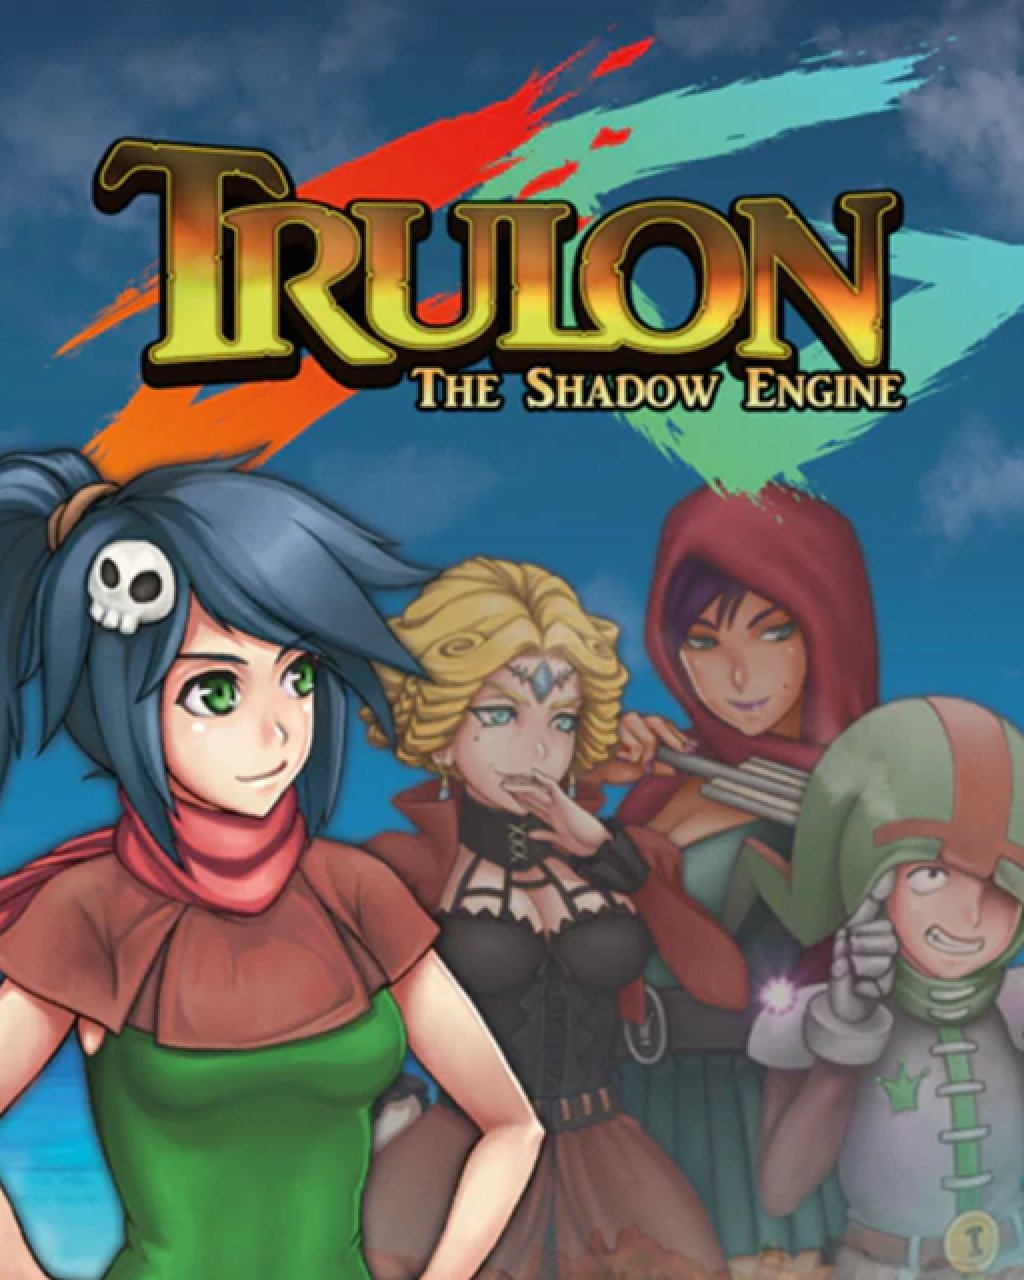 Trulon The Shadow Engine